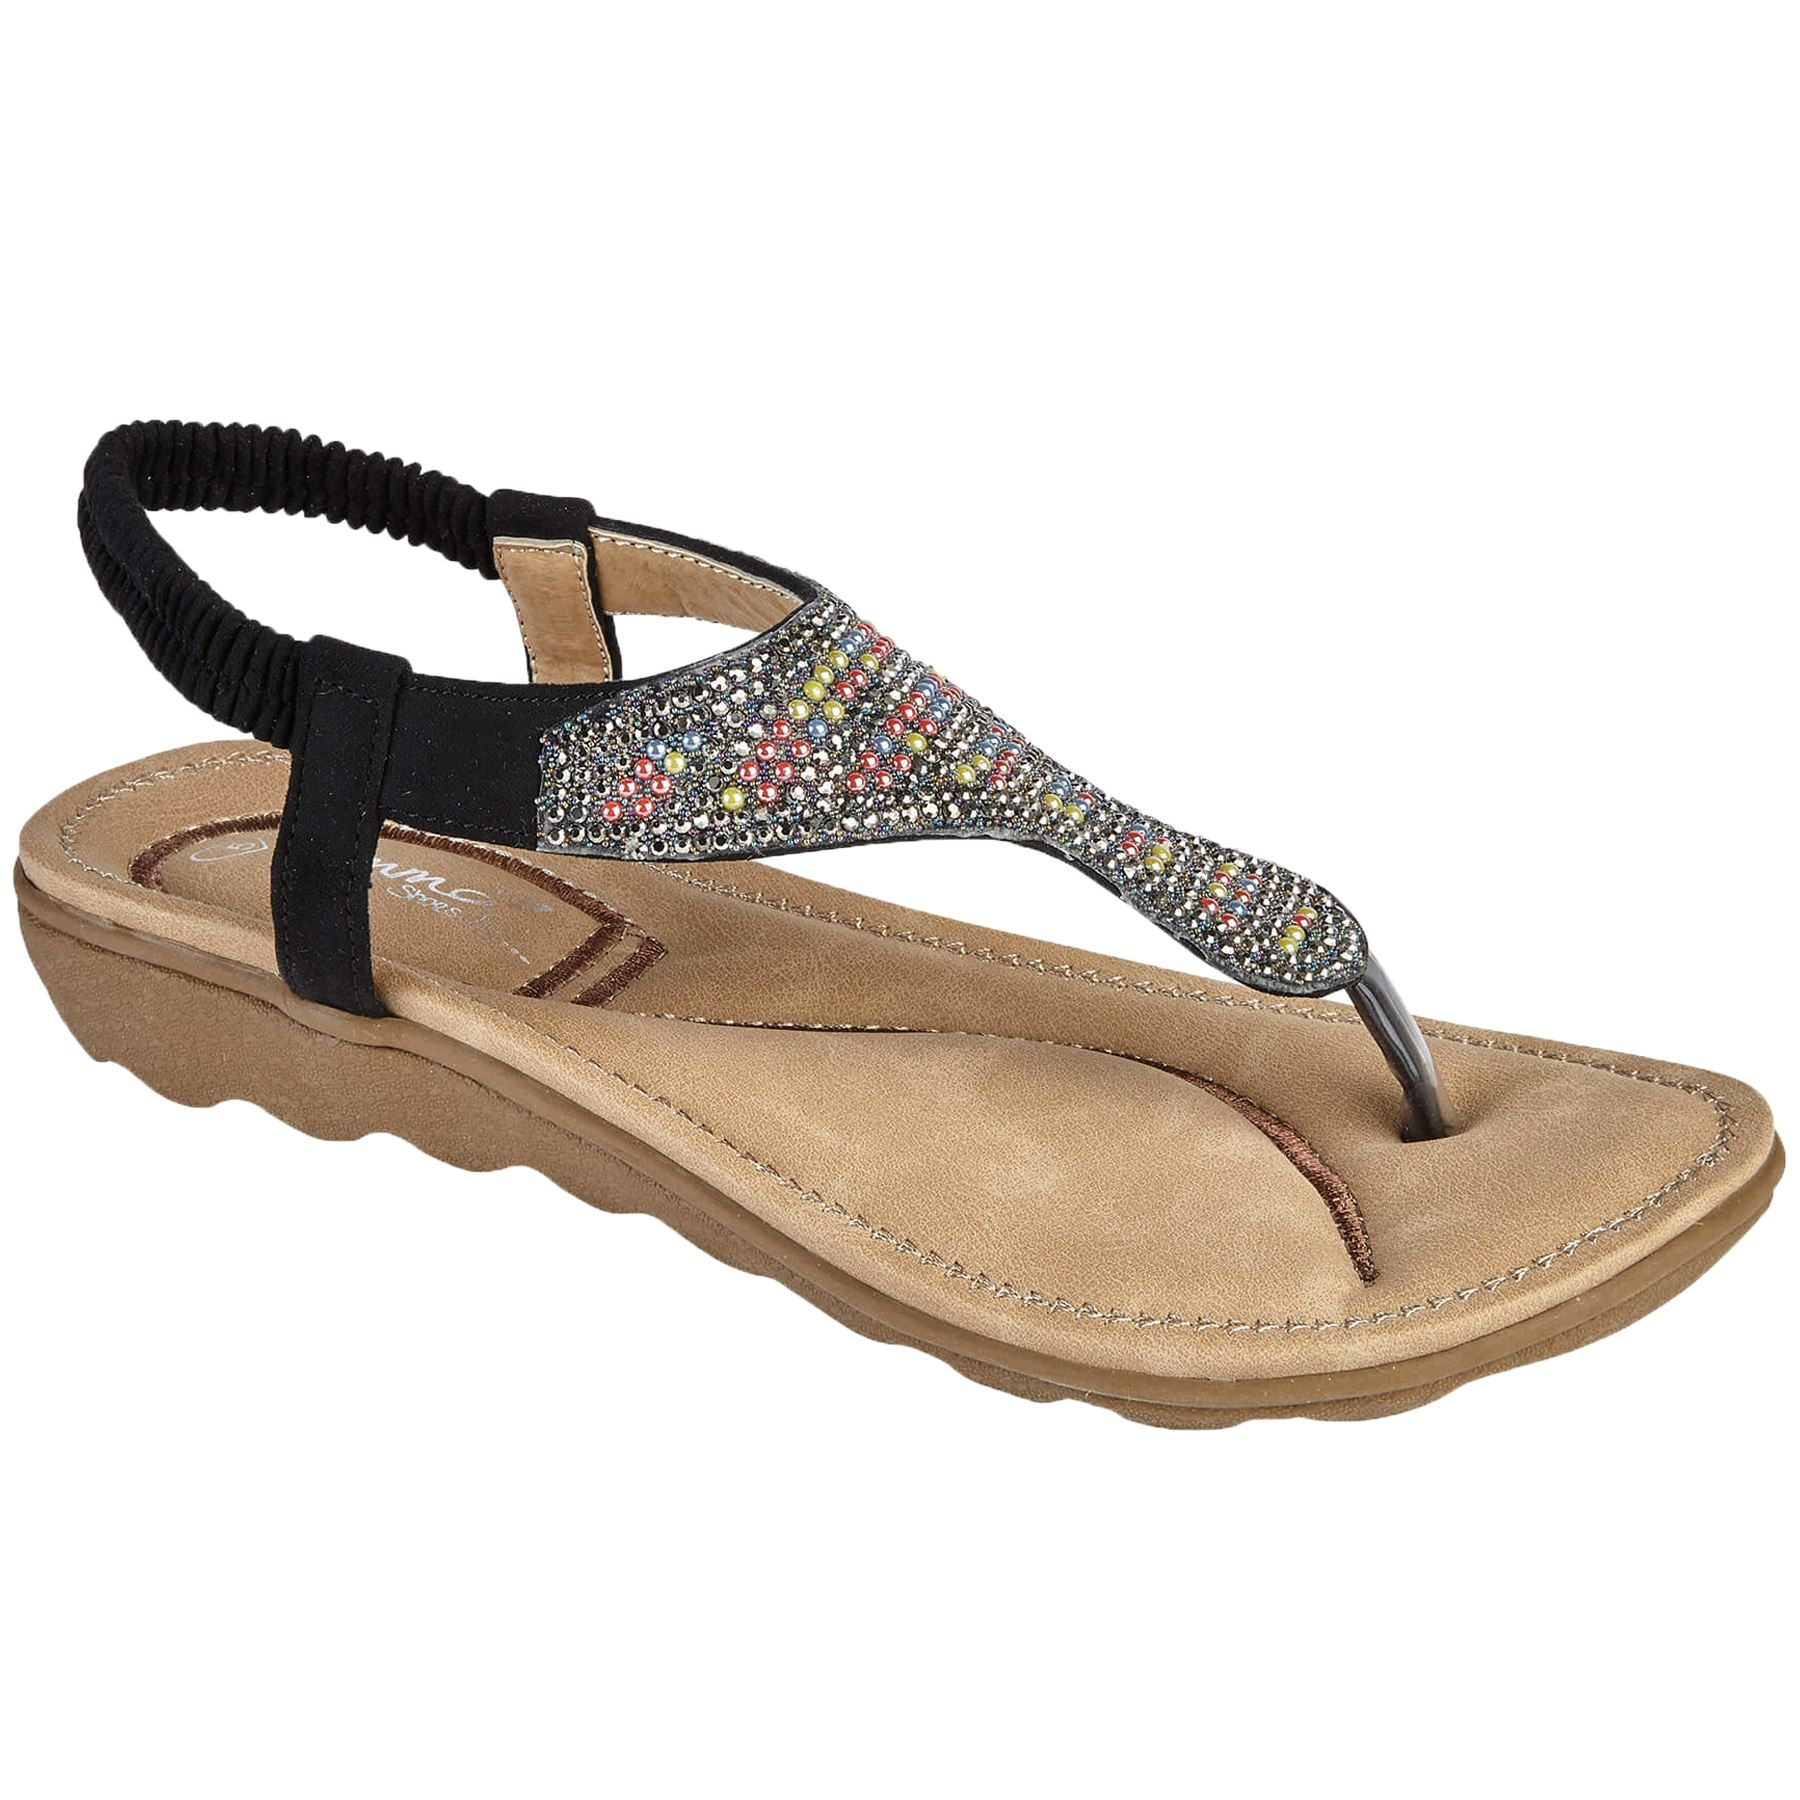 22ebeb4aa5ed52 TASMANIA Ladies Toe Post Diamante Elastic Sling Back Beaded Thong Sandals